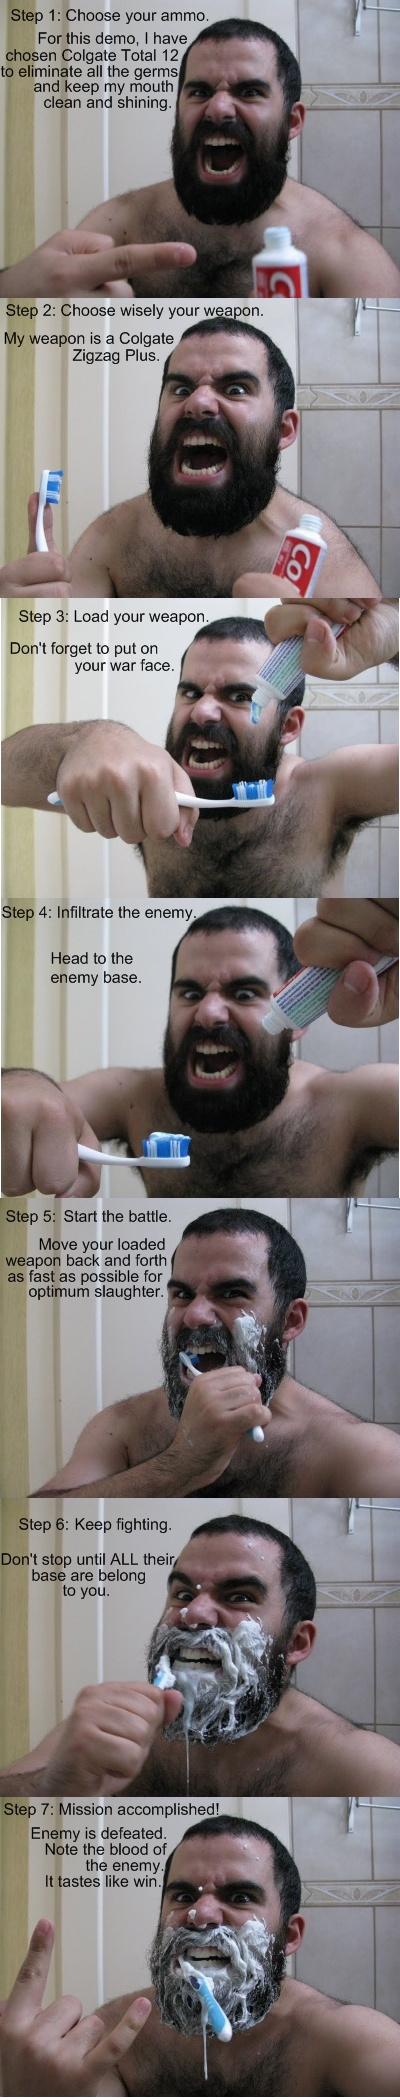 THIS IS TOOTHBRUSHING!